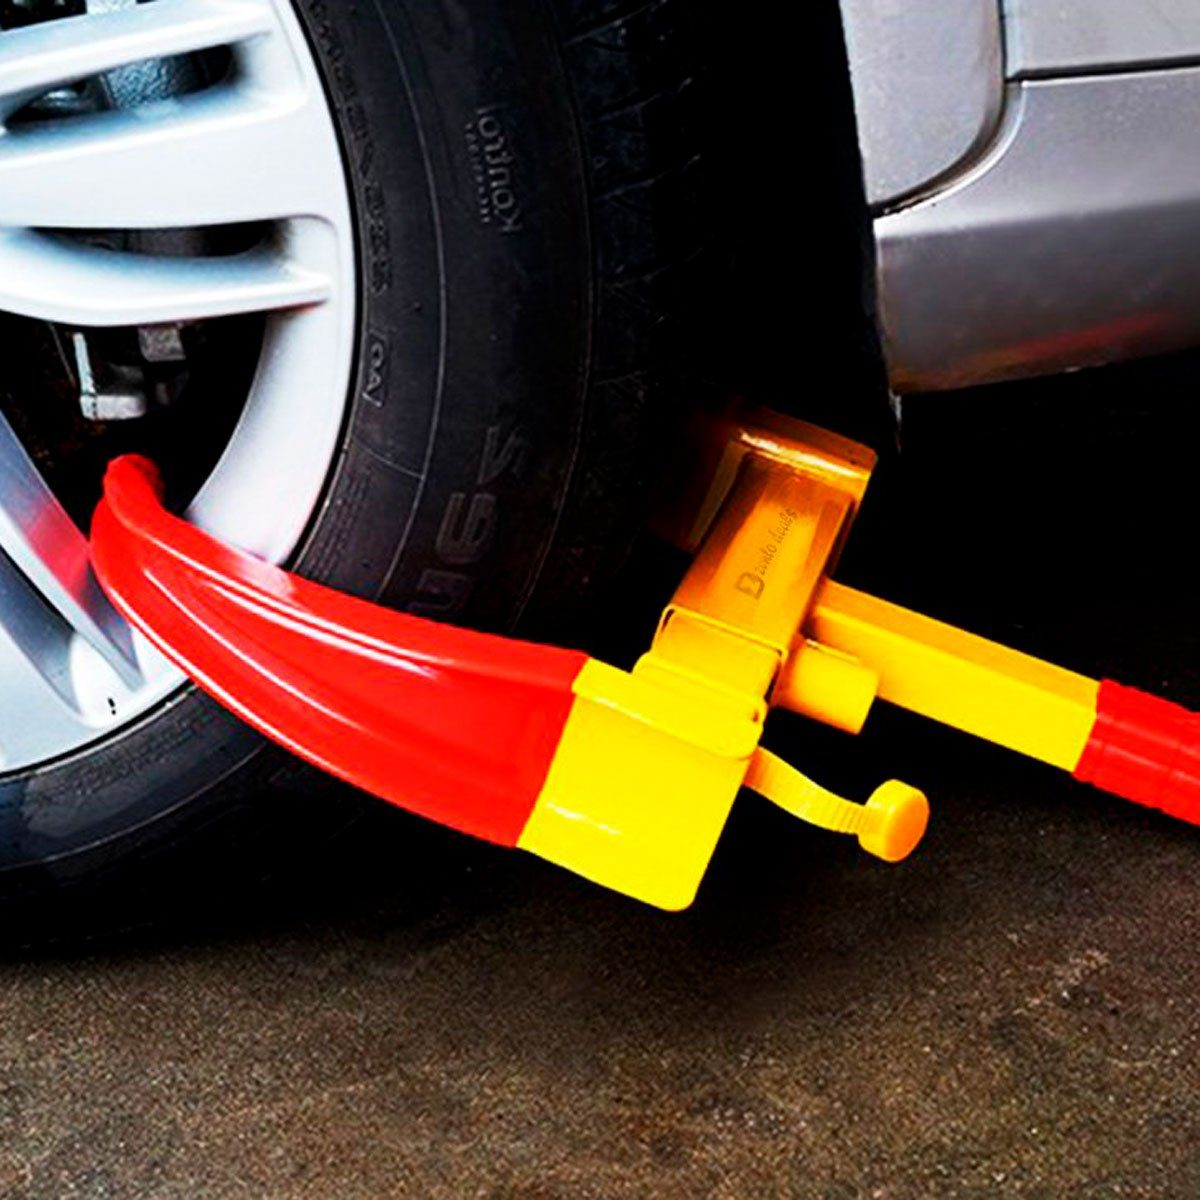 10 Car Anti-Theft Devices You Can Buy | Family Handyman